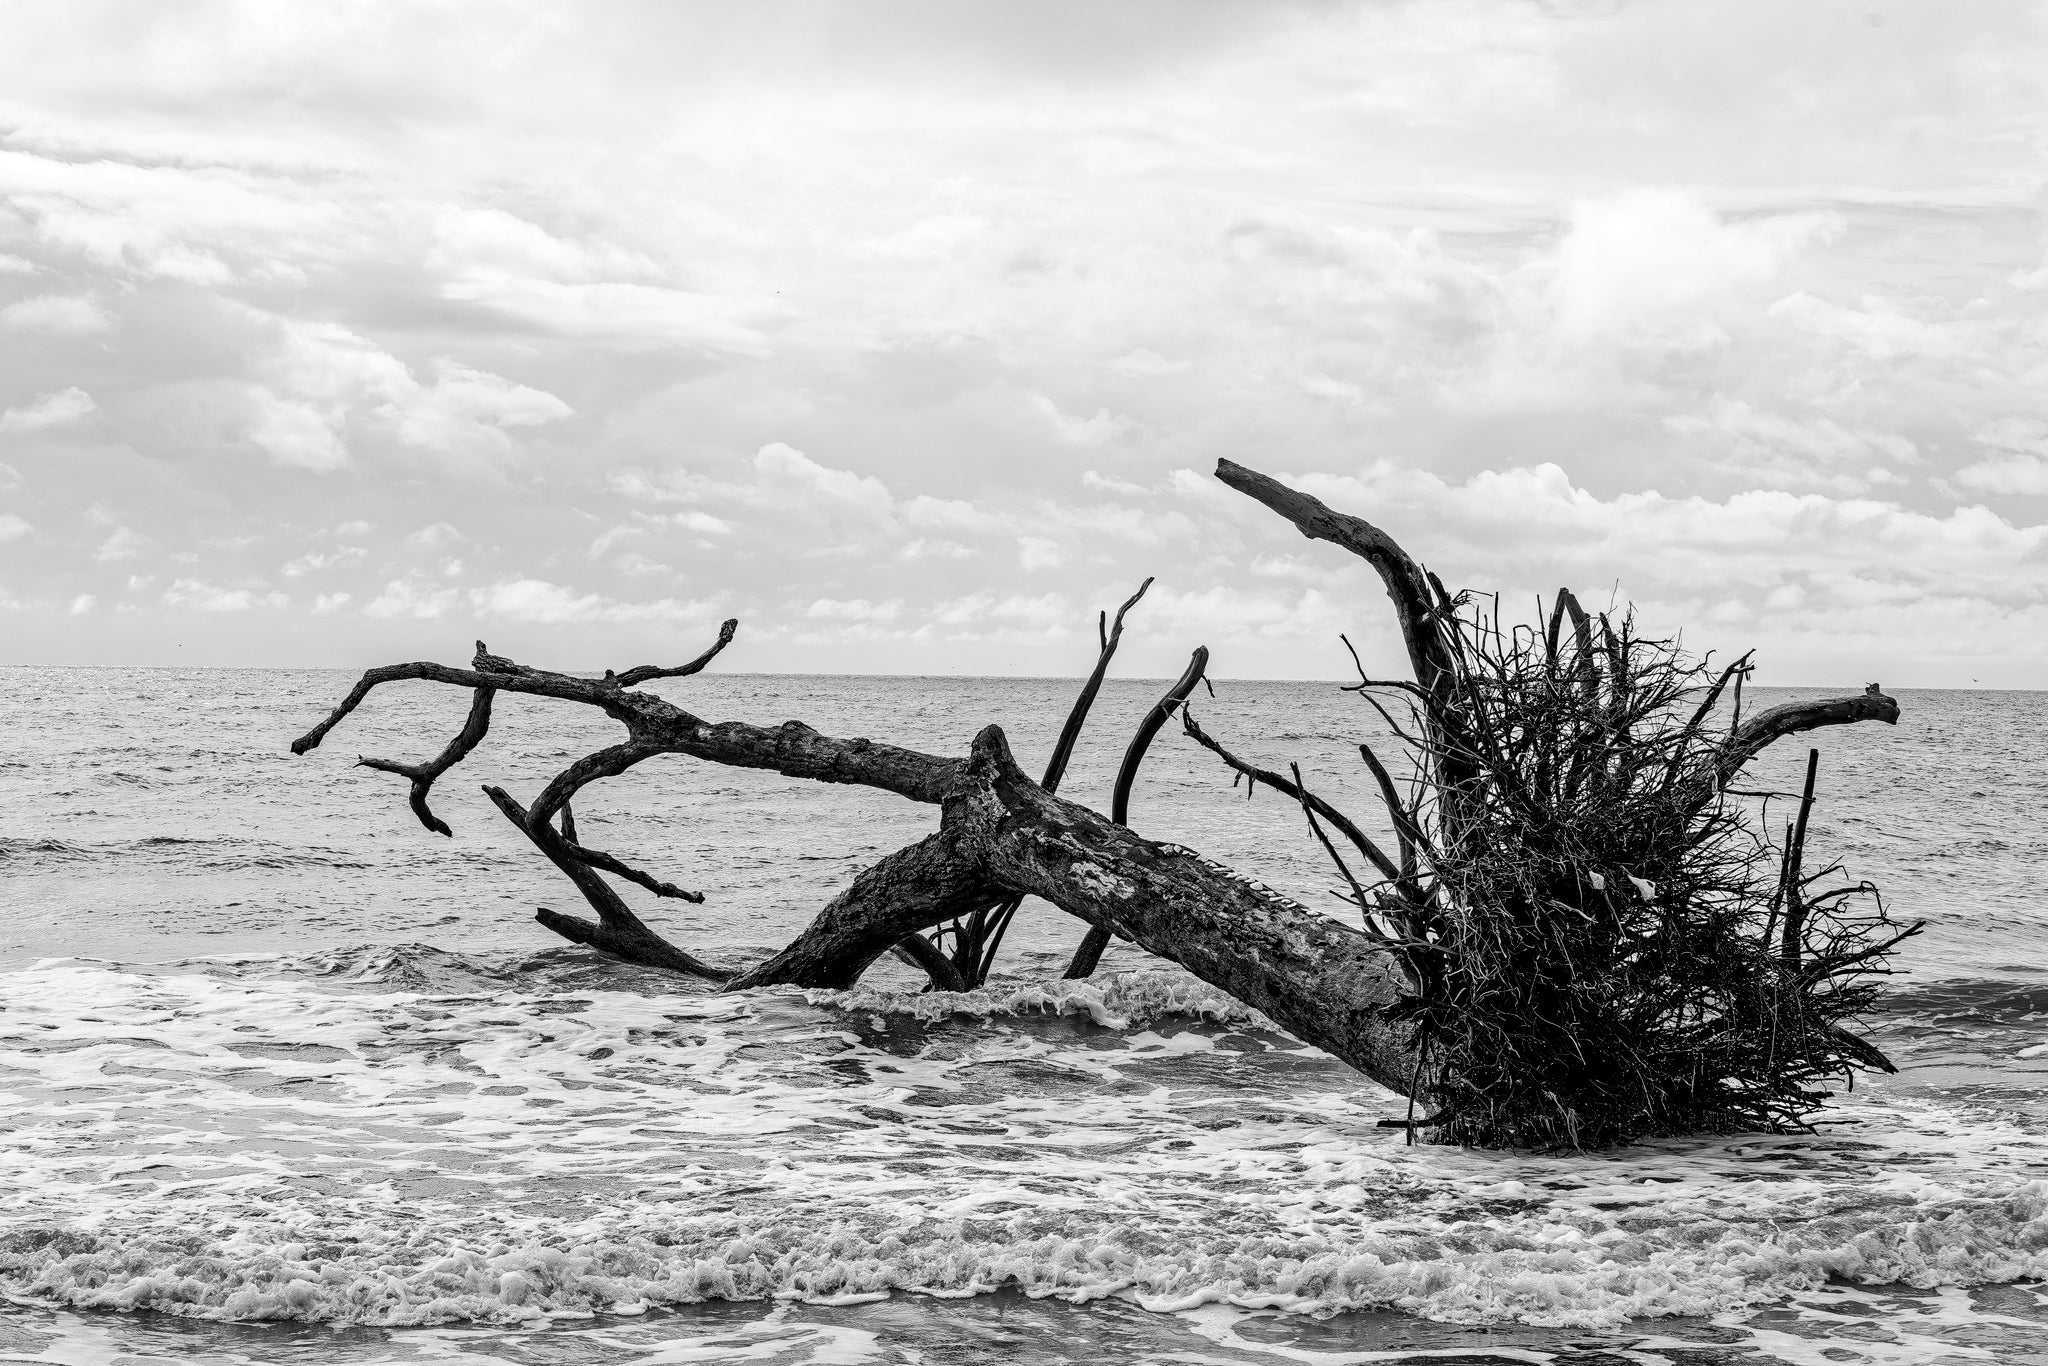 Fallen Beach Tree in Ocean Surf - Black and White Landscape Photograph